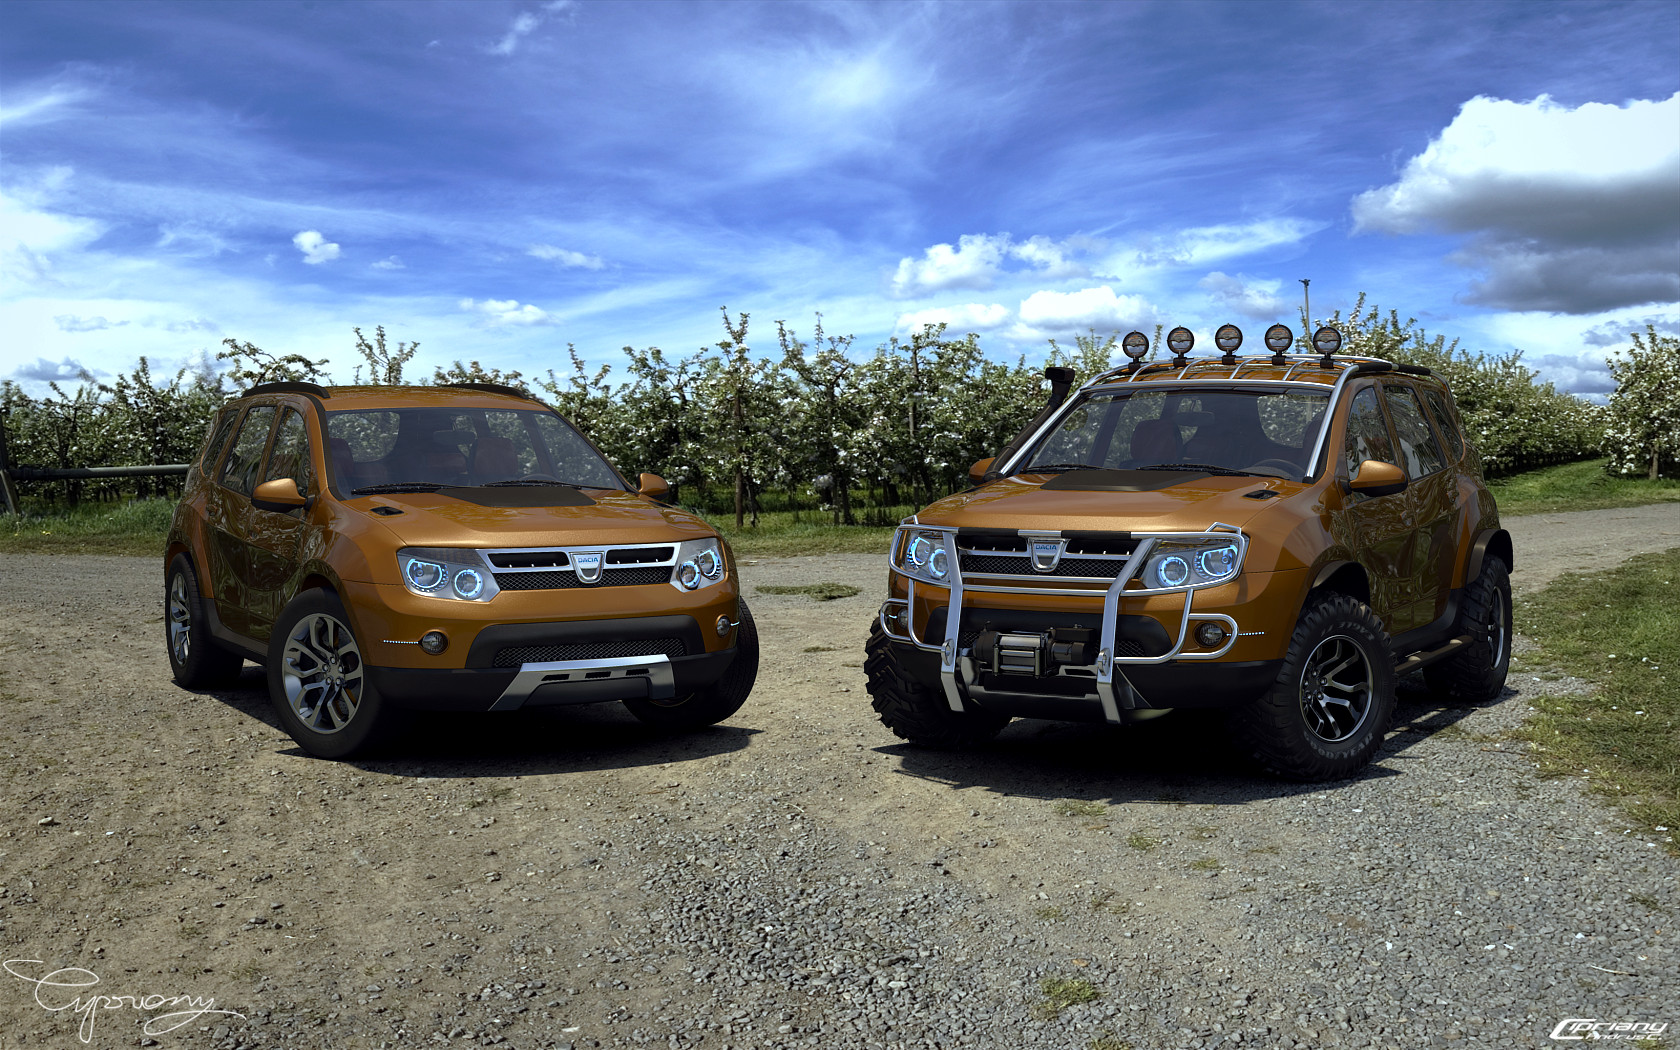 dacia duster tuning 10 by cipriany on deviantart. Black Bedroom Furniture Sets. Home Design Ideas